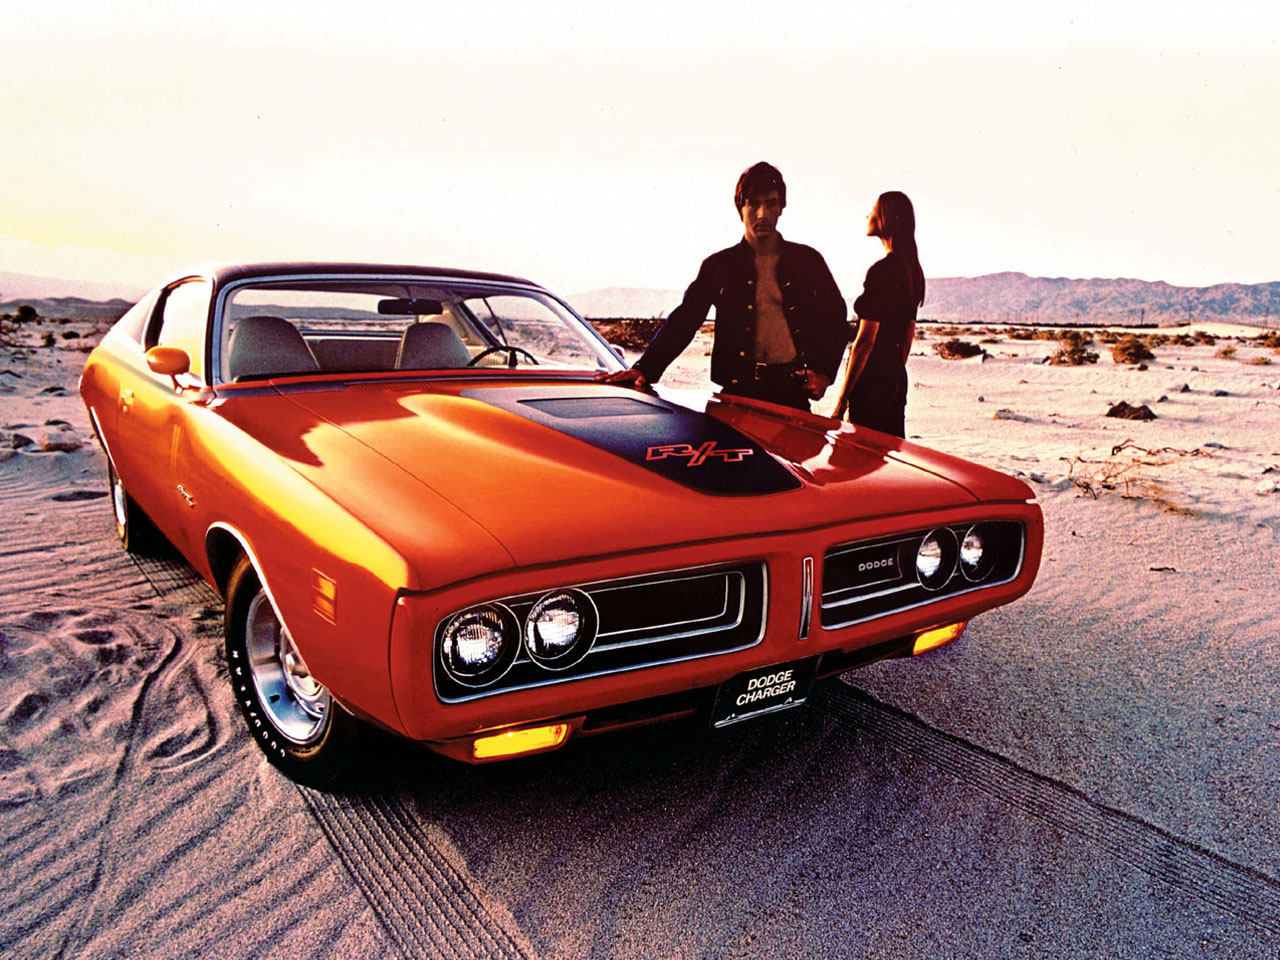 1971 Dodge Charger Wallpaper